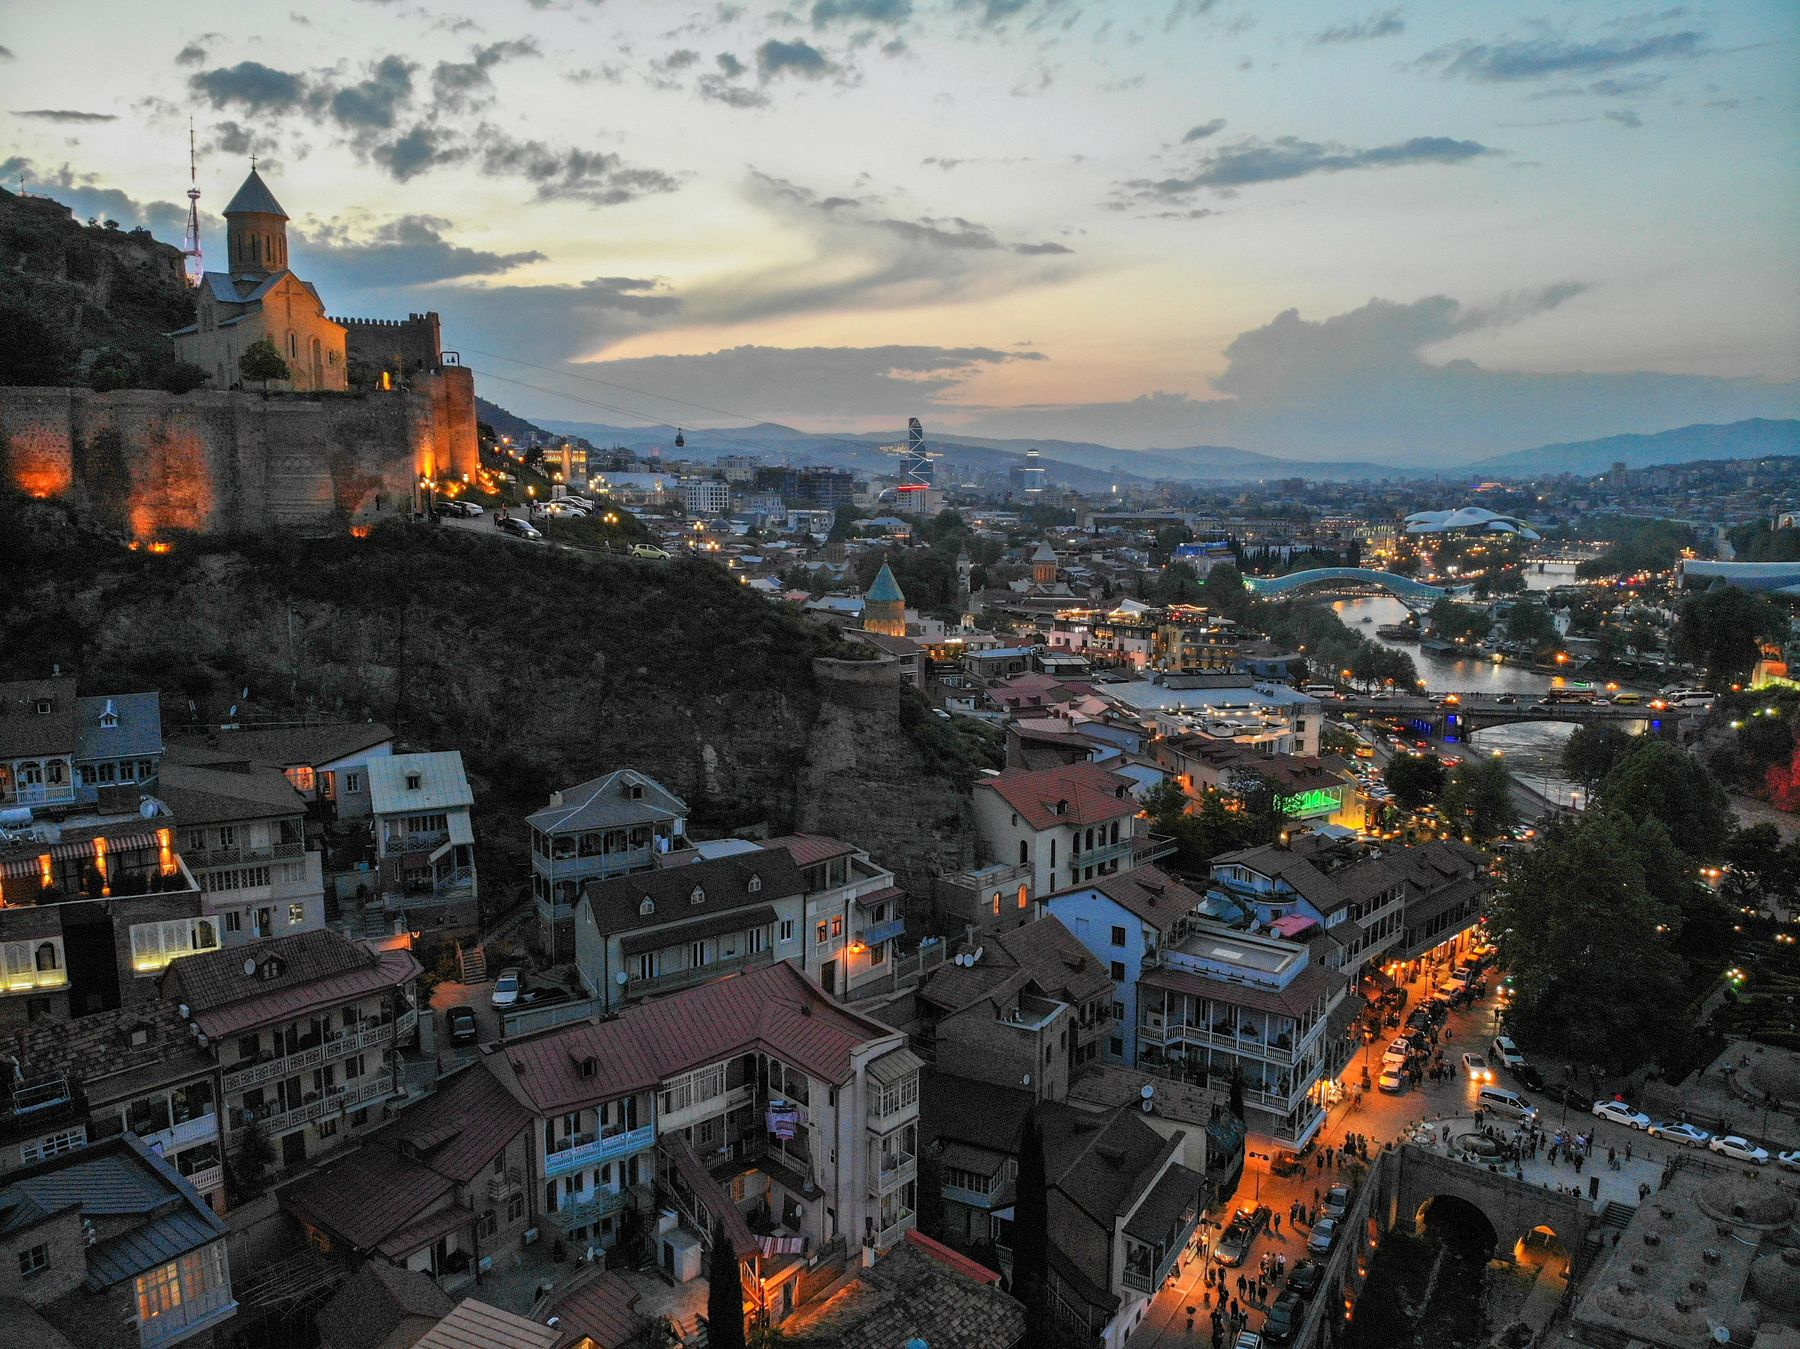 cityview by evening in tbilisi georgia